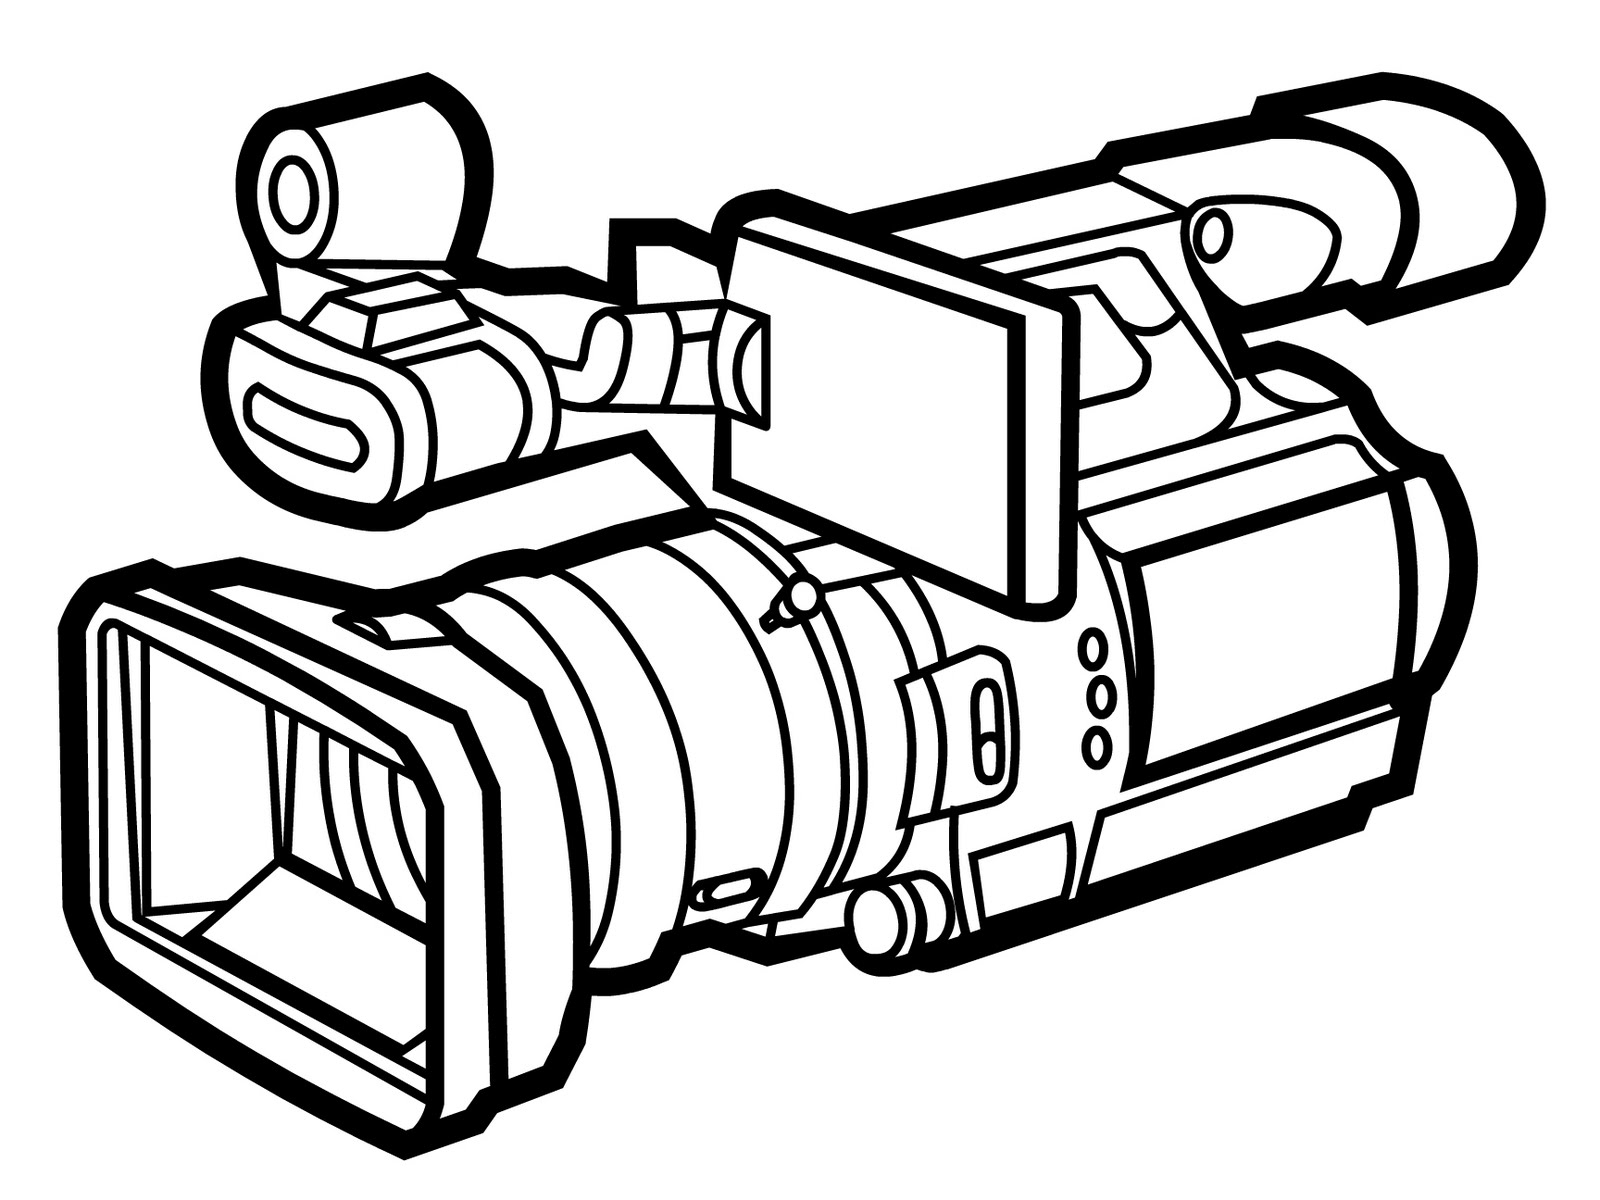 Professional video camera clipart.